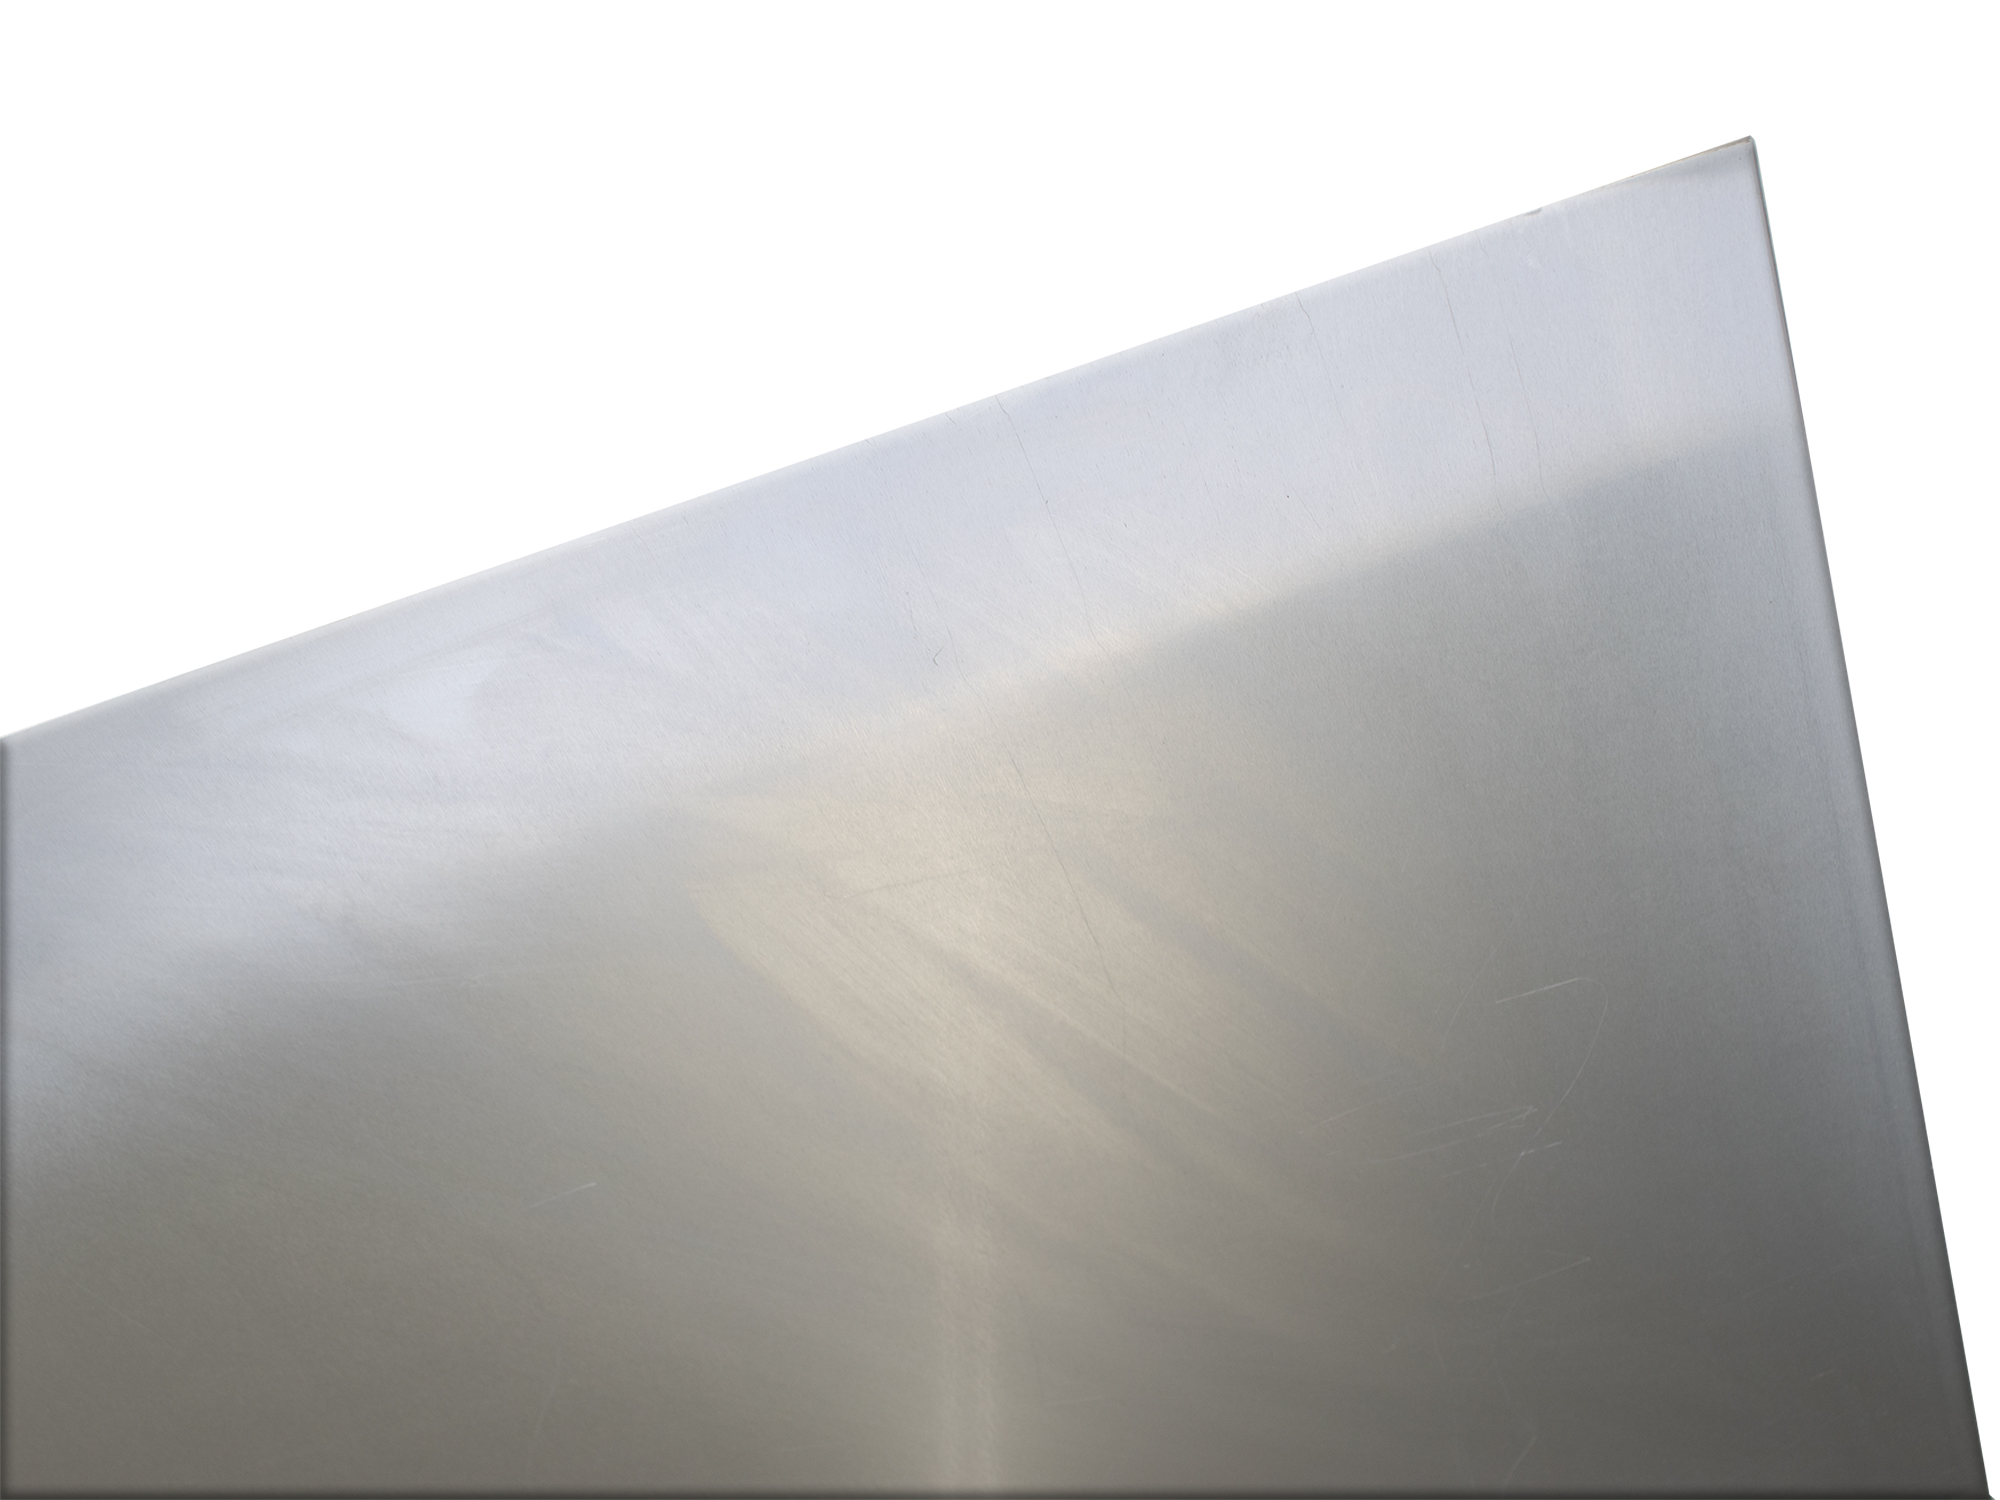 plaat aluminium 1000 x 500 x 3,0mm